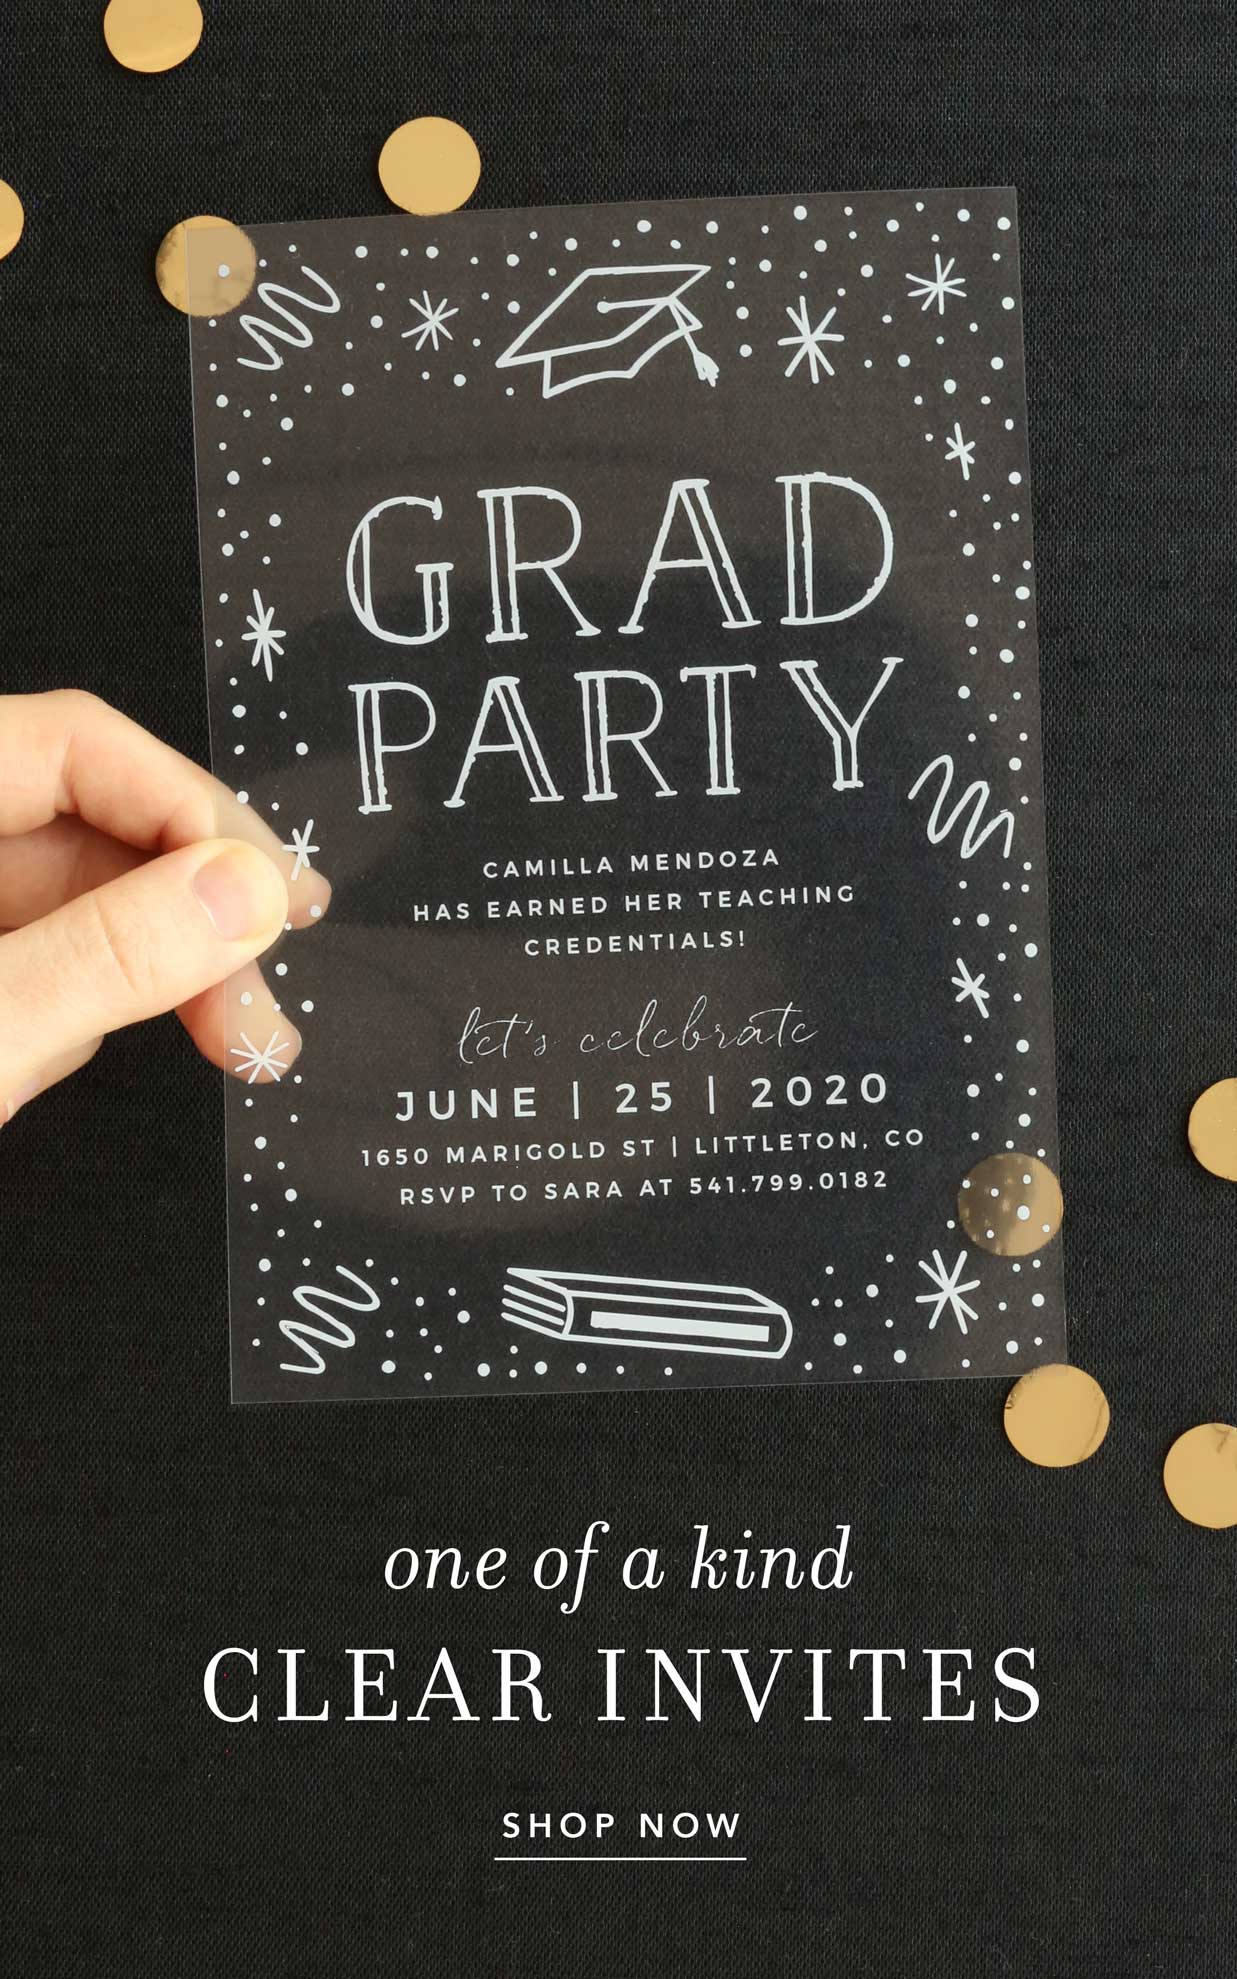 One of a kind clear invites!